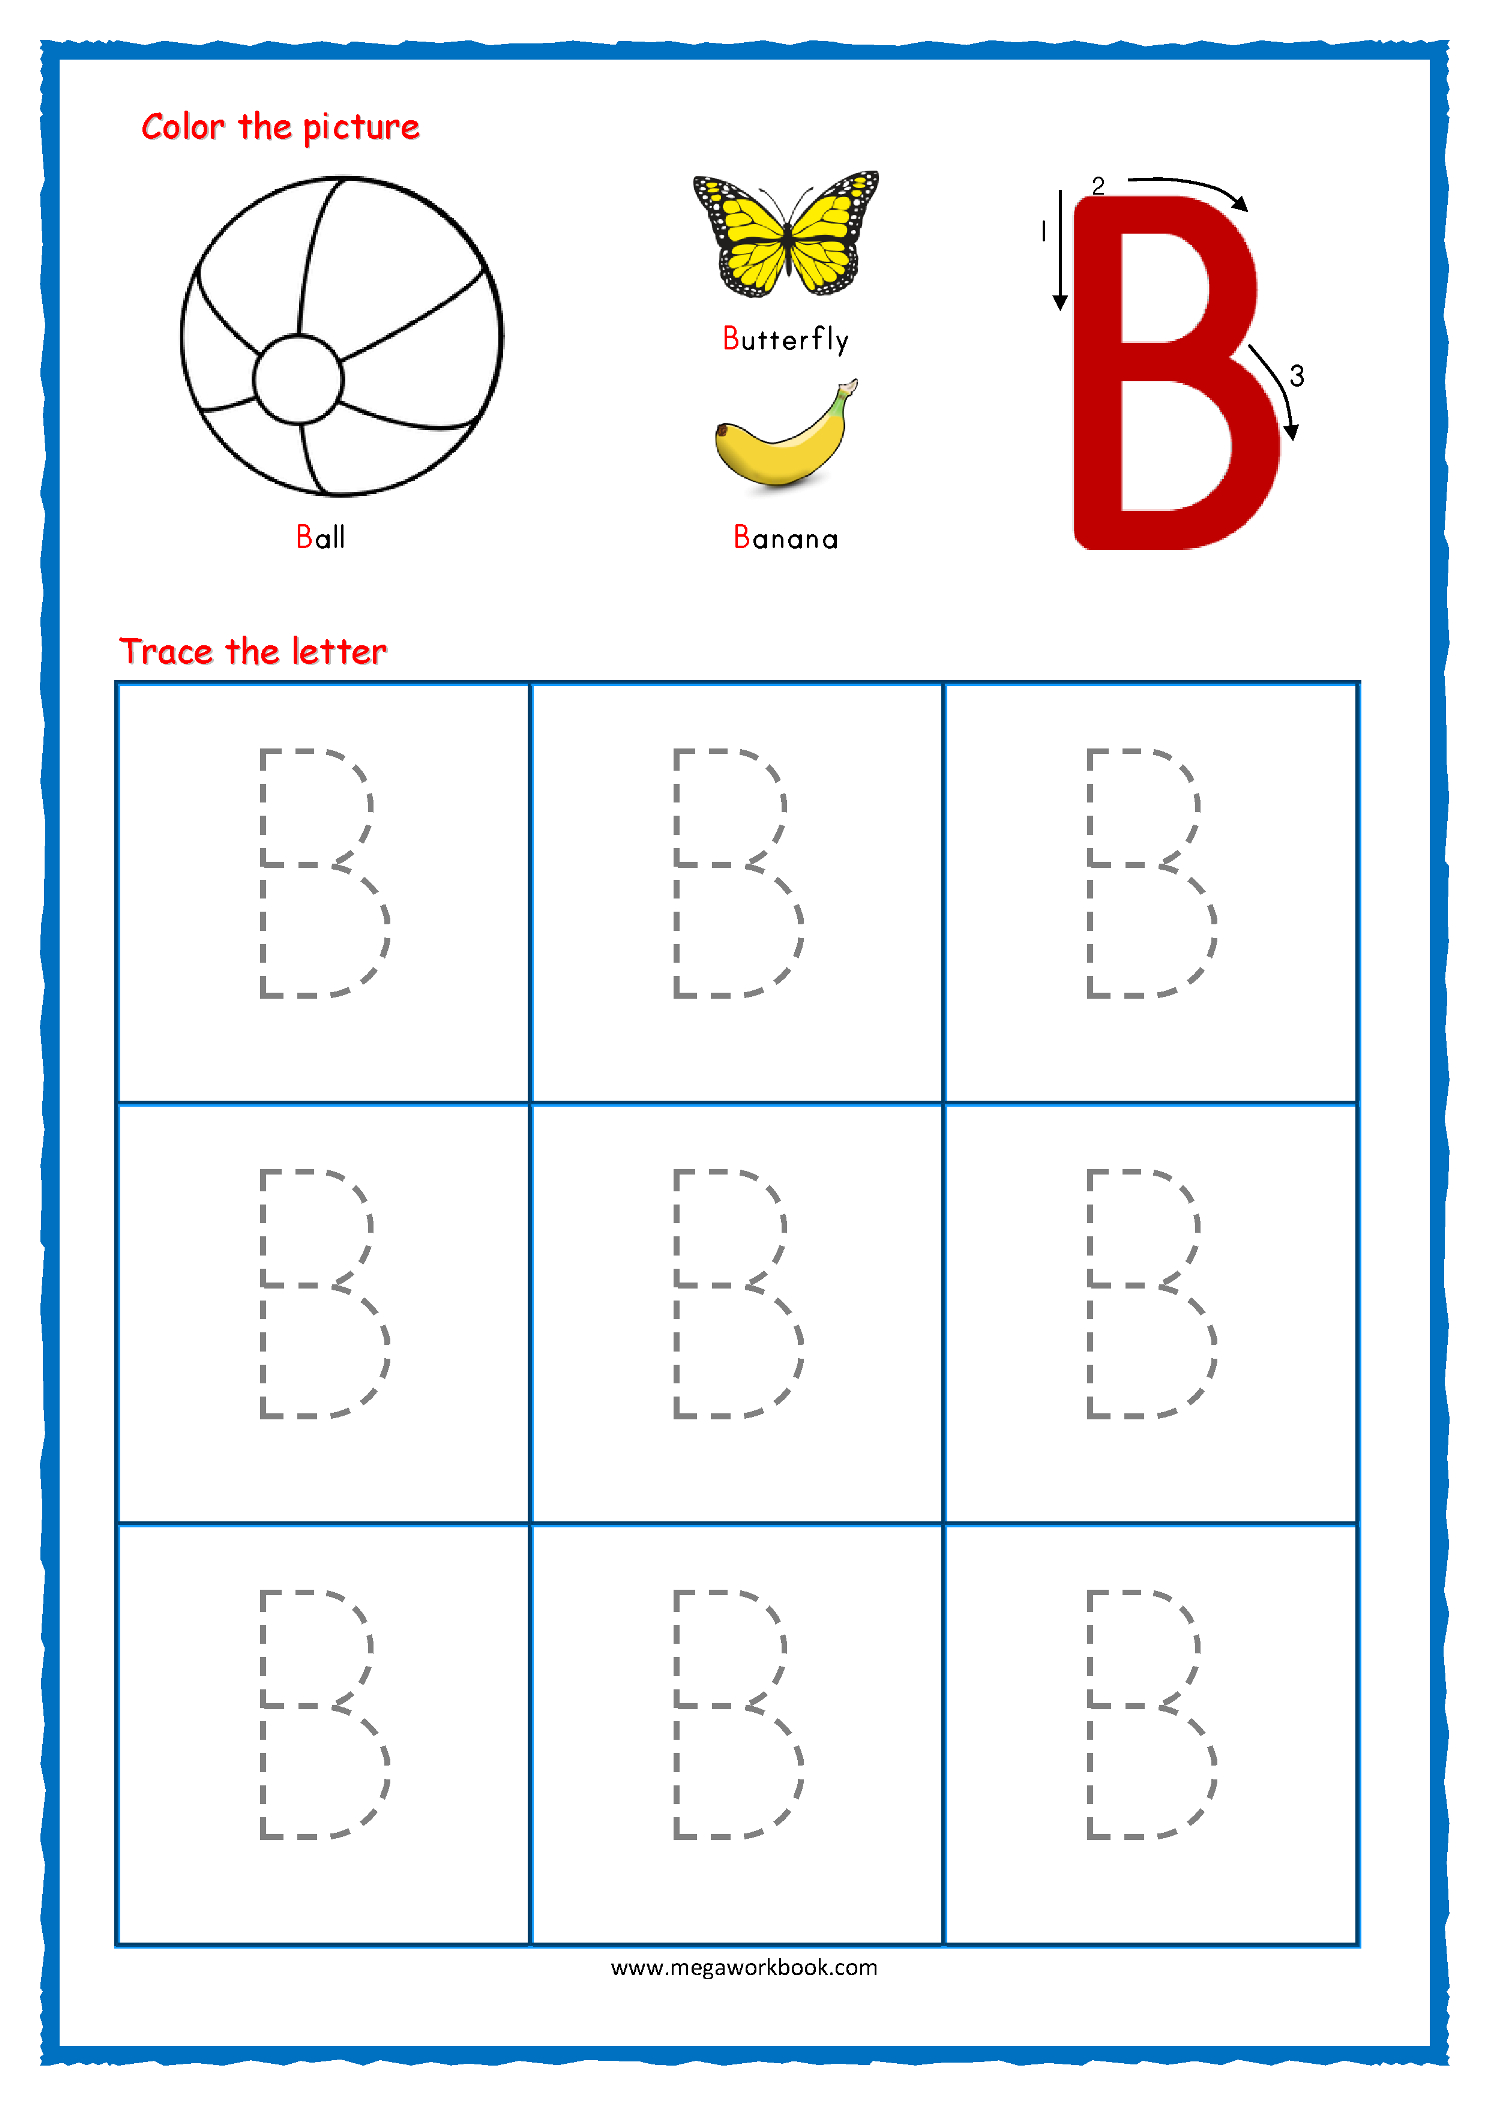 Tracing Letters - Alphabet Tracing - Capital Letters with regard to Tracing Capital Letters